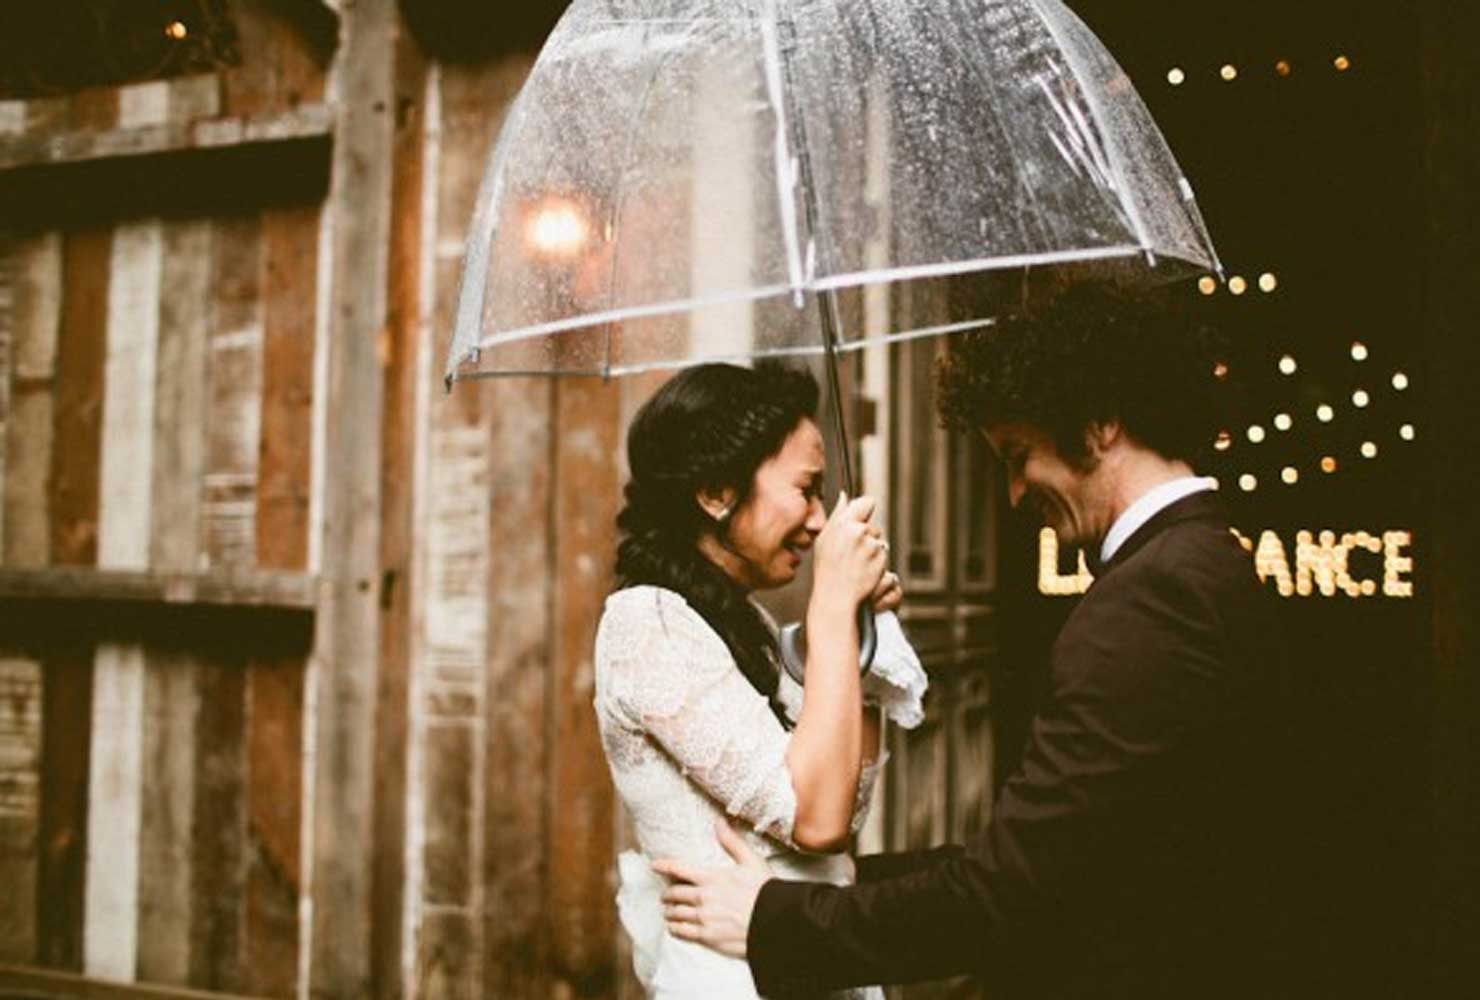 Emotional bride holding clear umbrella with groom